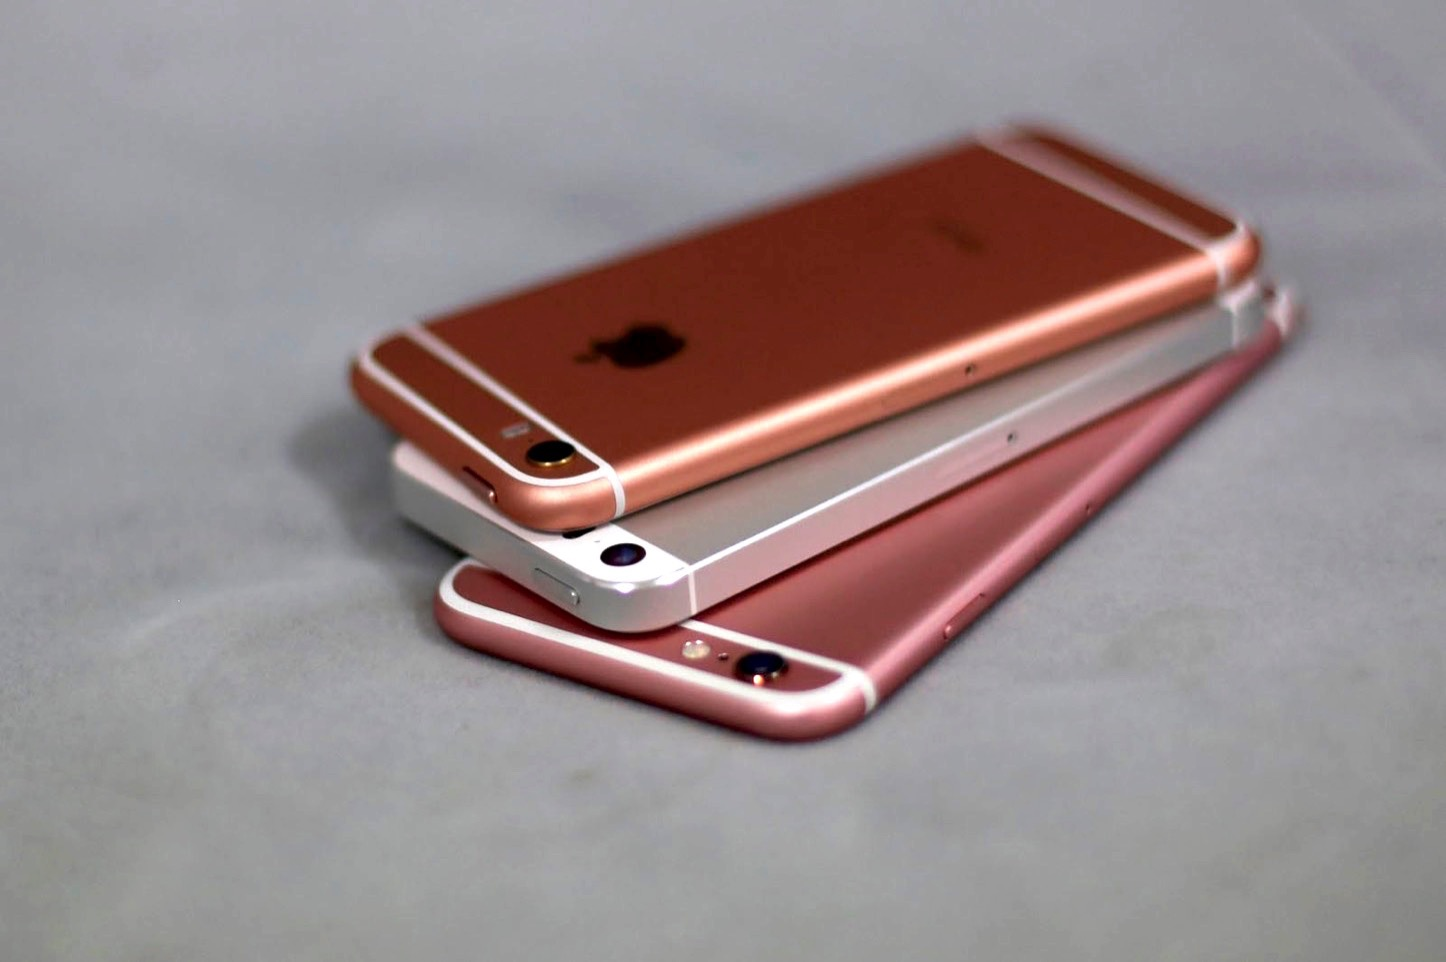 IPhone SE Fake Samples from China